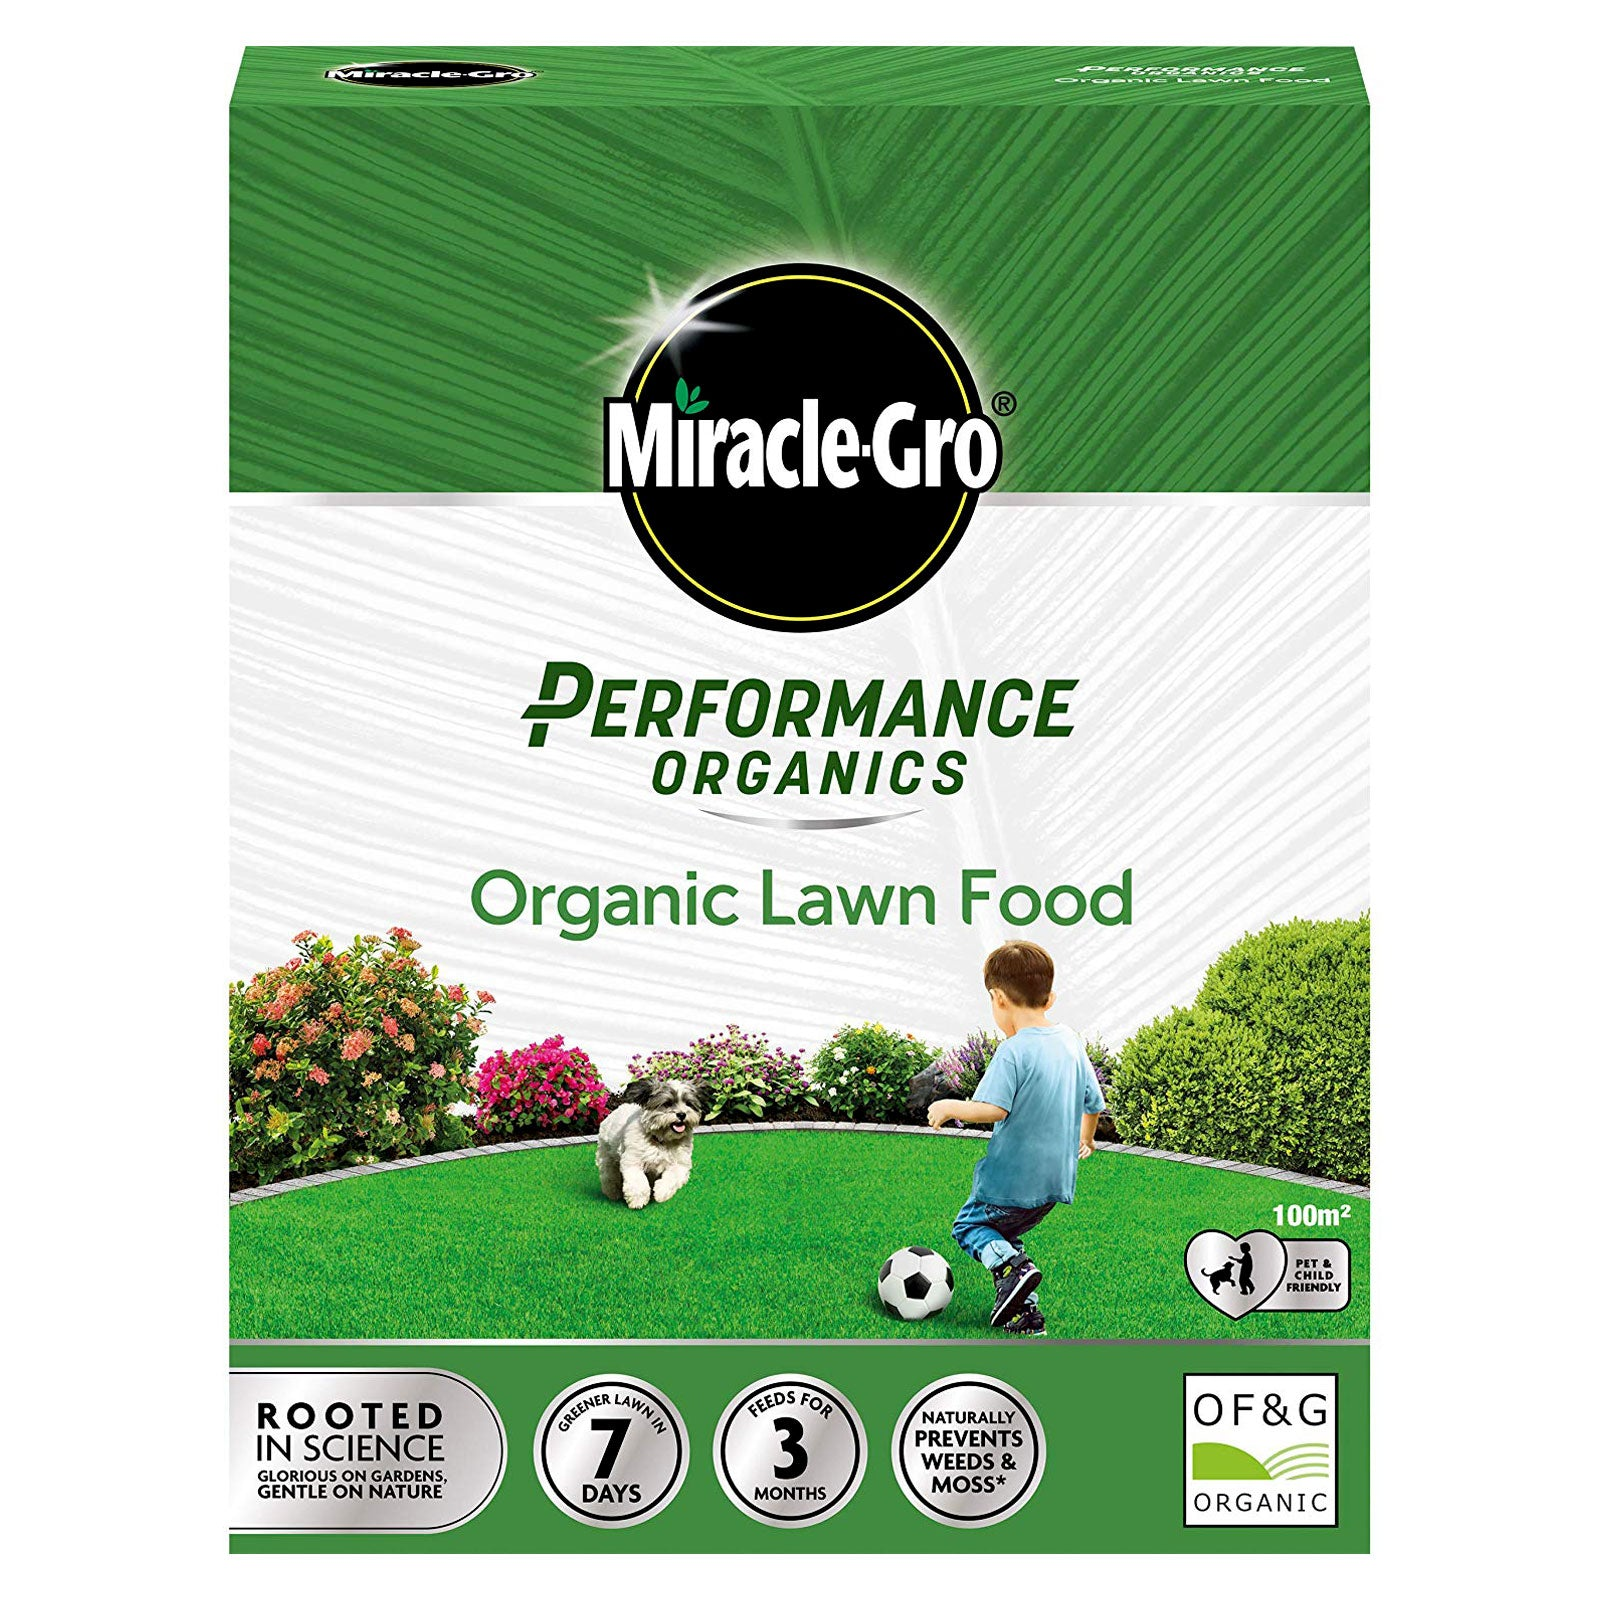 Miracle Gro Performance Organics Lawn Food 2.5kg Covers ...